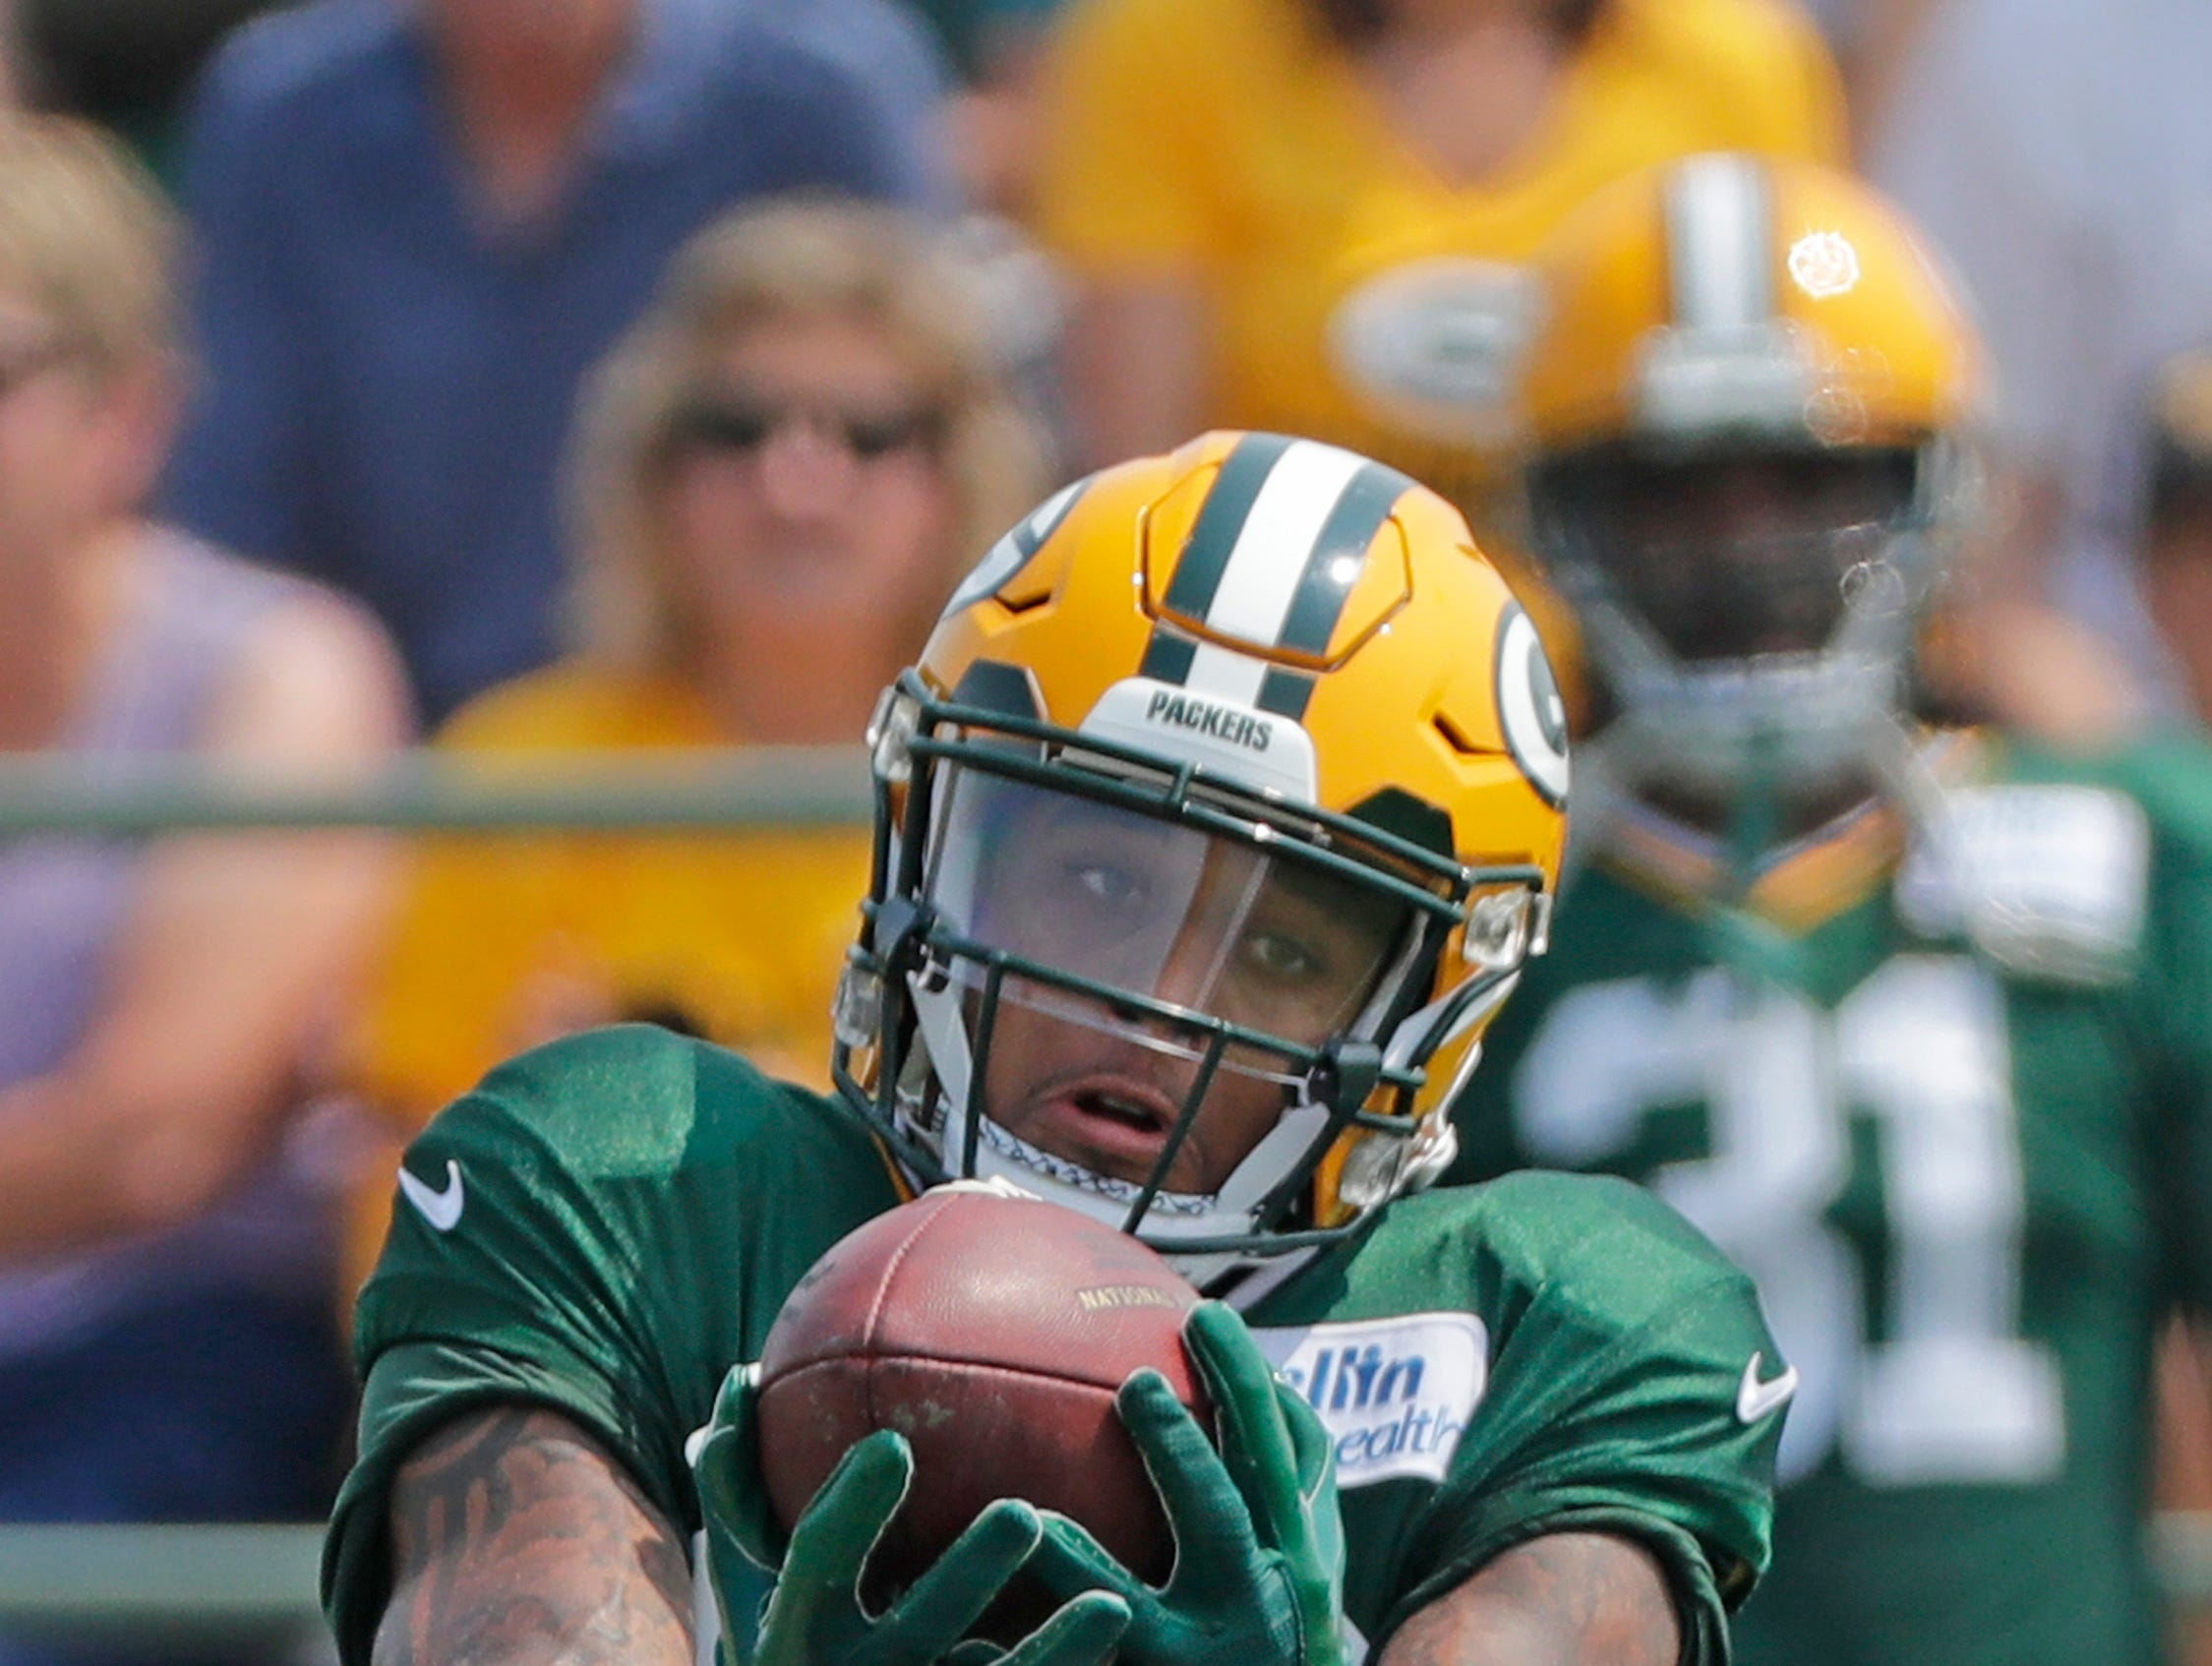 Green Bay Packers cornerback Jaire Alexander (23) during training camp practice at Ray Nitschke Field on Sunday, August 12, 2018 in Ashwaubenon, Wis. 